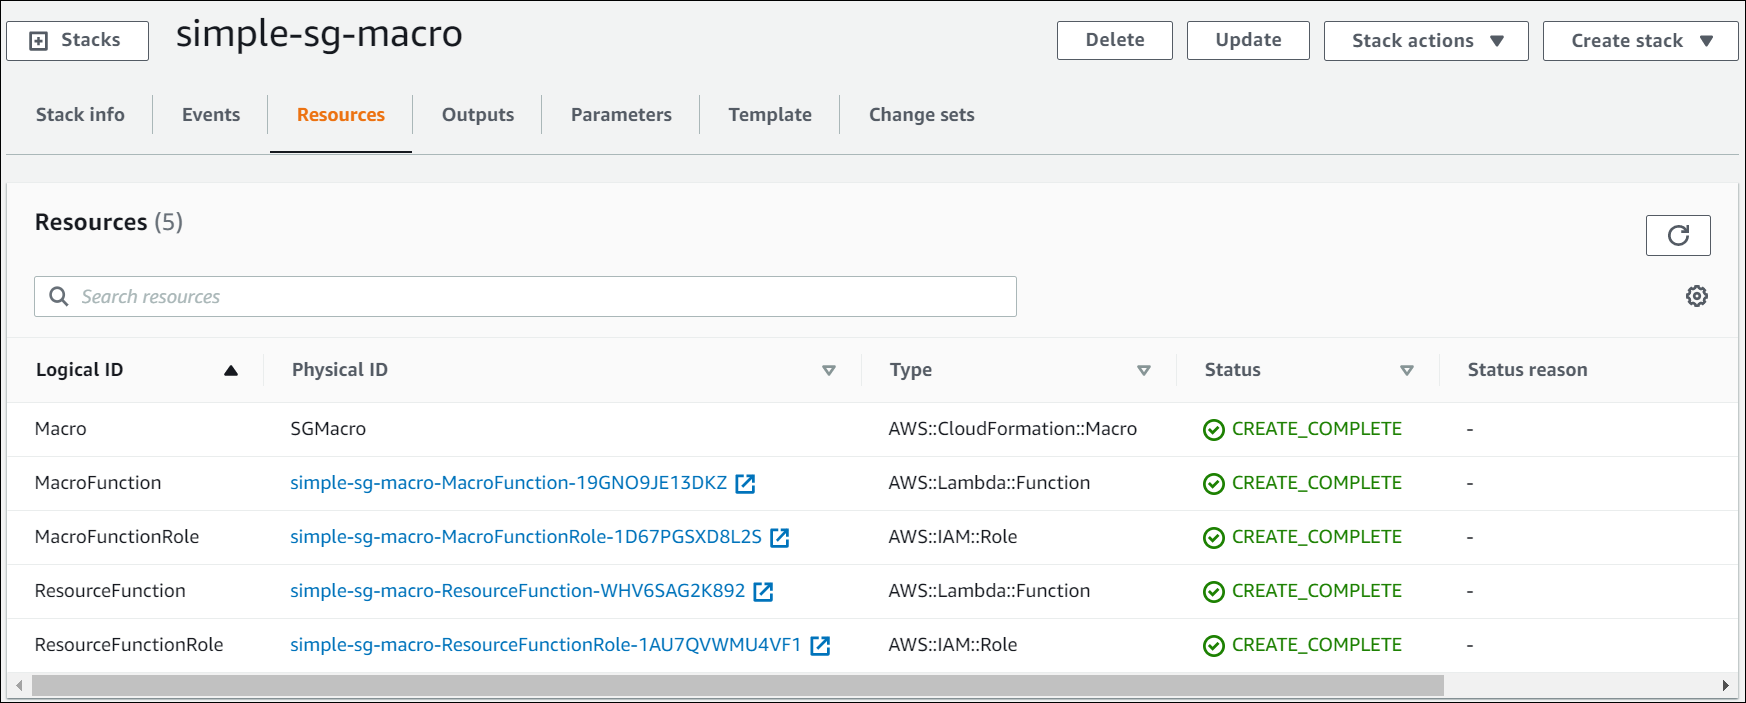 The Stack Details page displays columns for logical ID, physical ID, type, and status for Macro, MacroFunction, MacroFunctionRole, ResourceFunction, and ResourceFunctionRole.